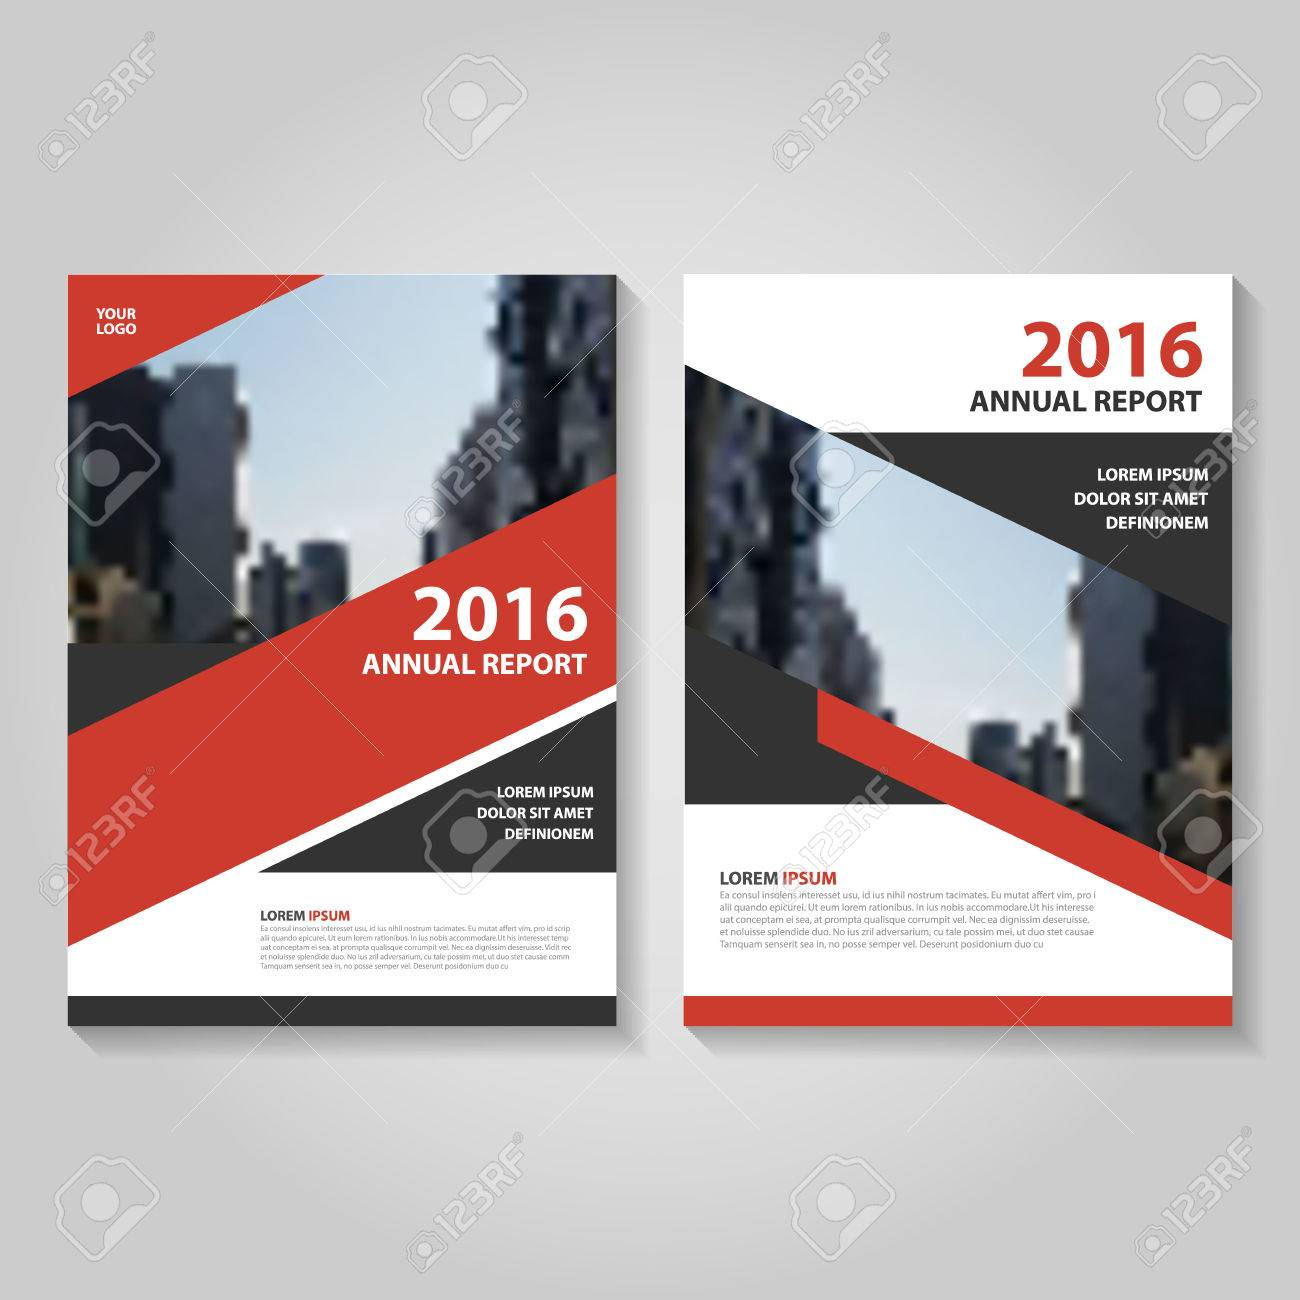 abstract red black annual report leaflet brochure template design